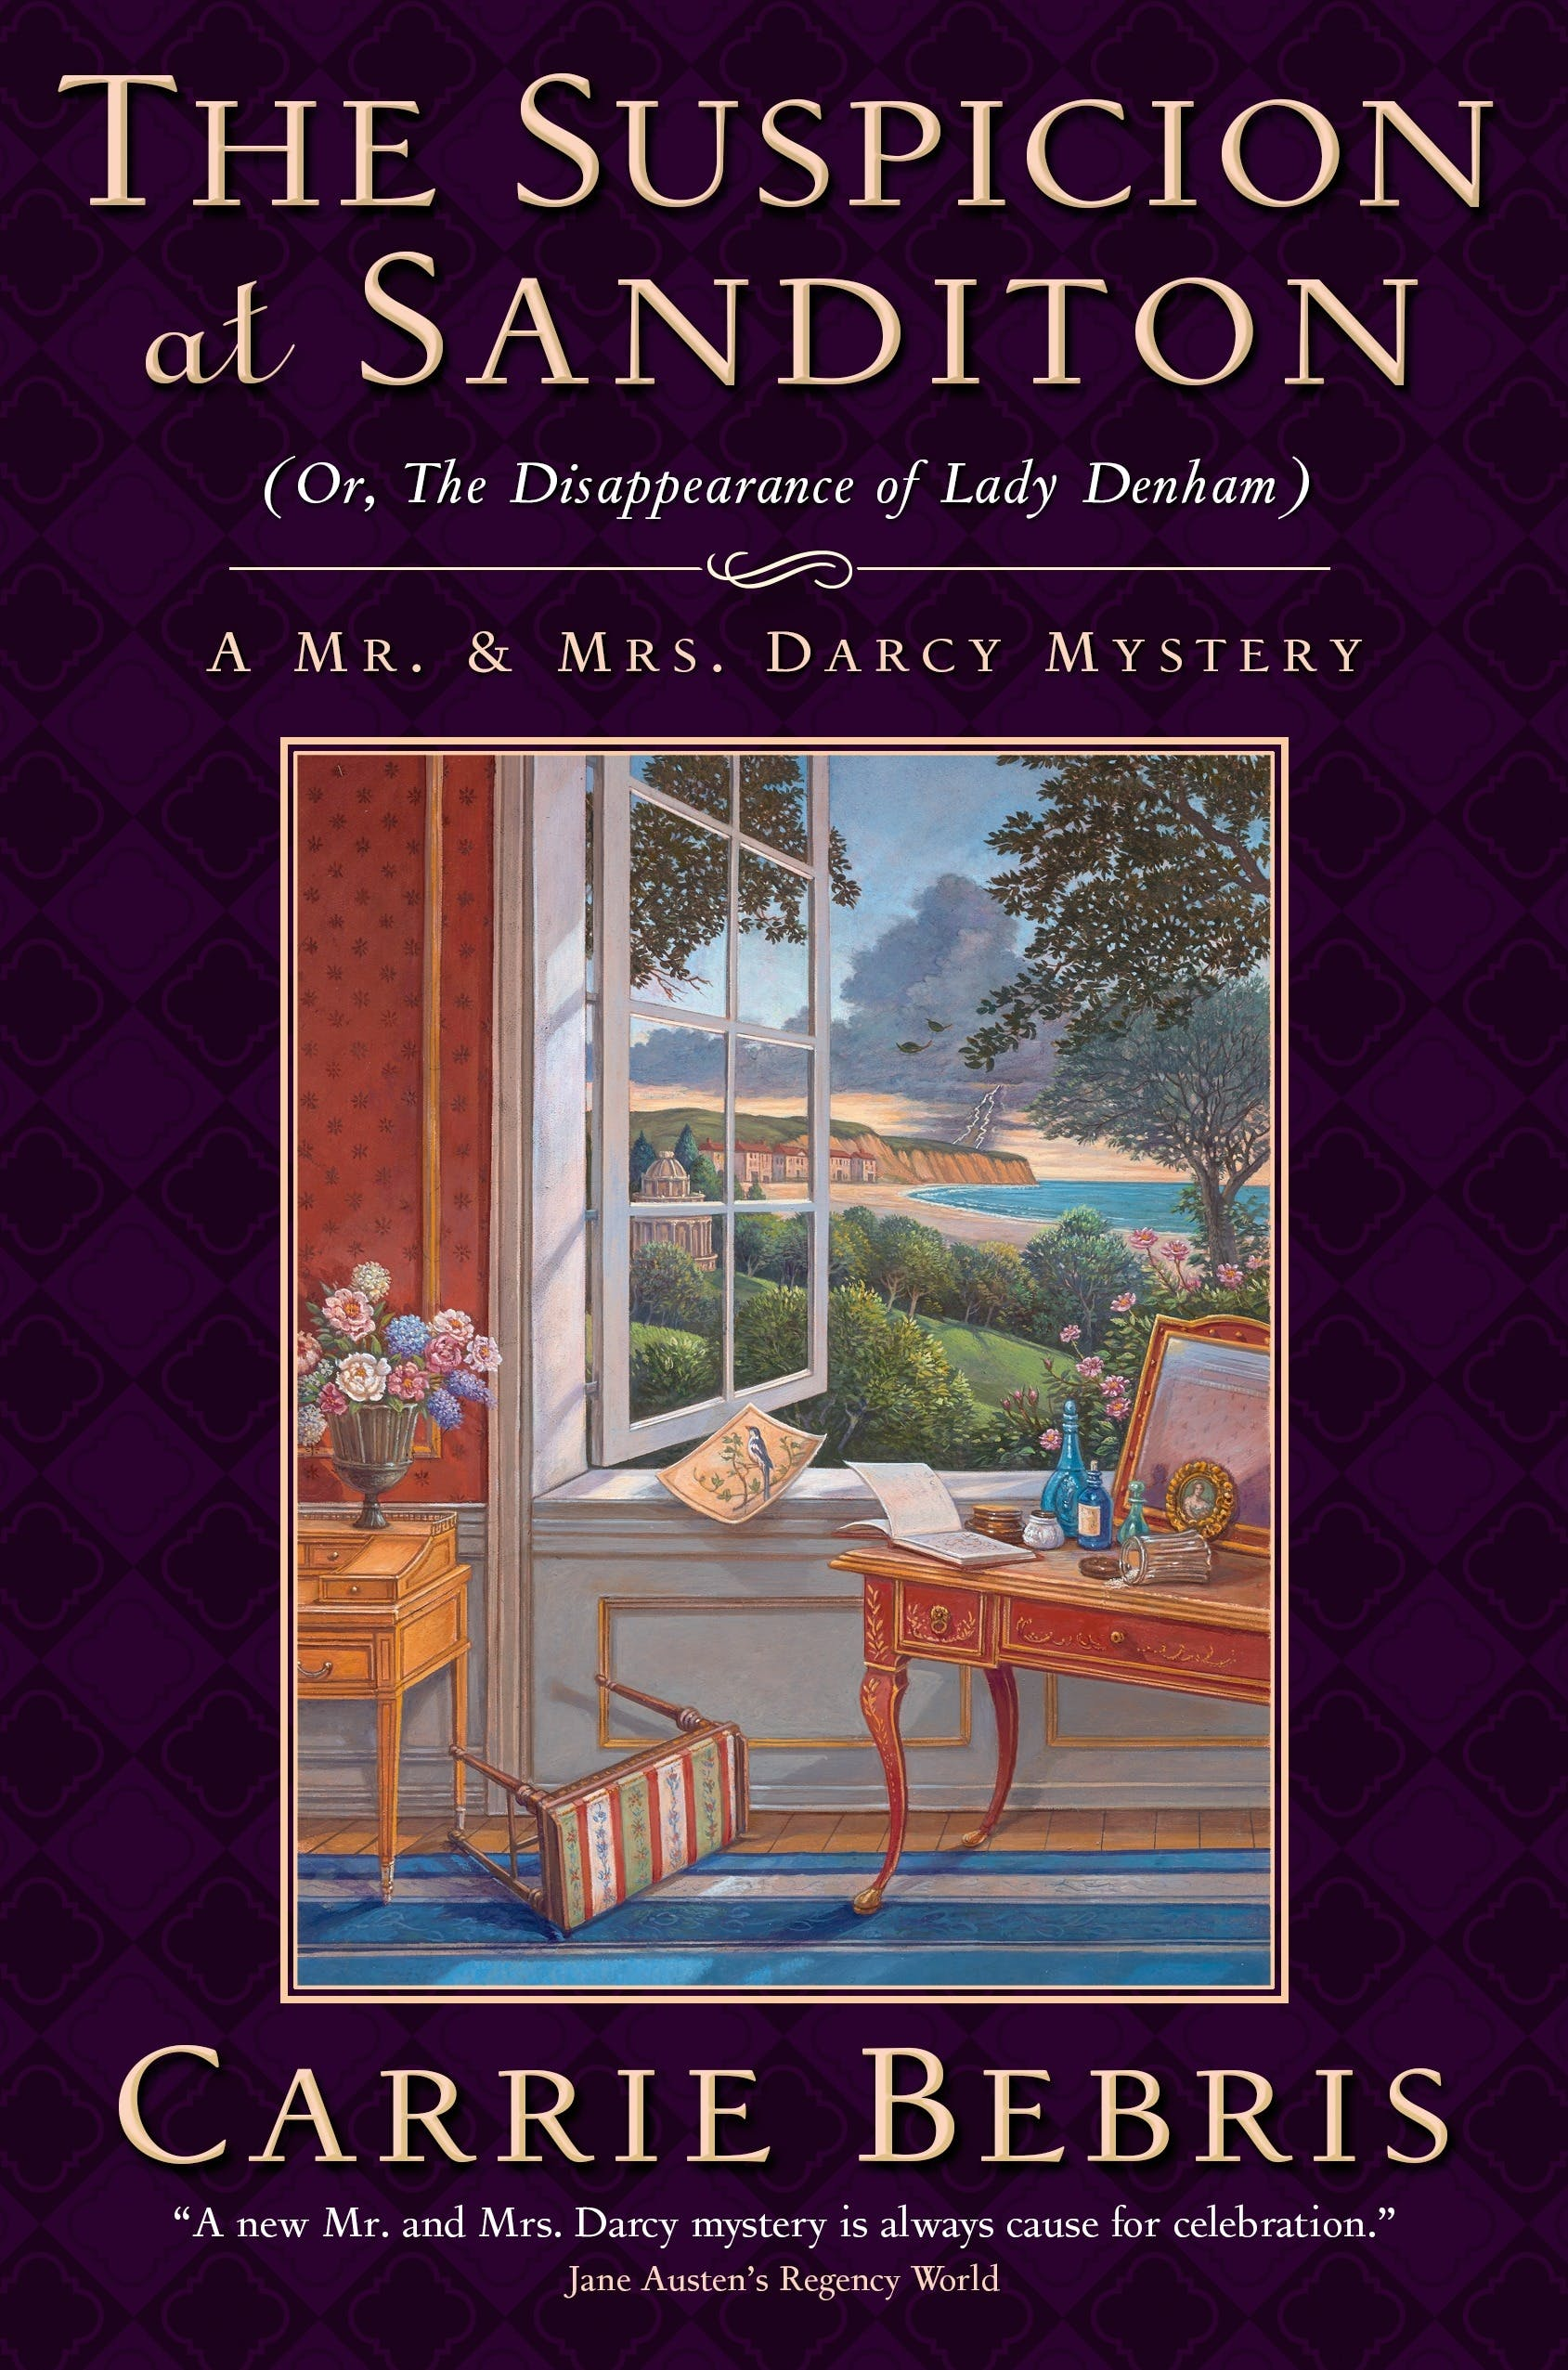 Image of The Suspicion at Sanditon (Or, The Disappearance of Lady Denham)